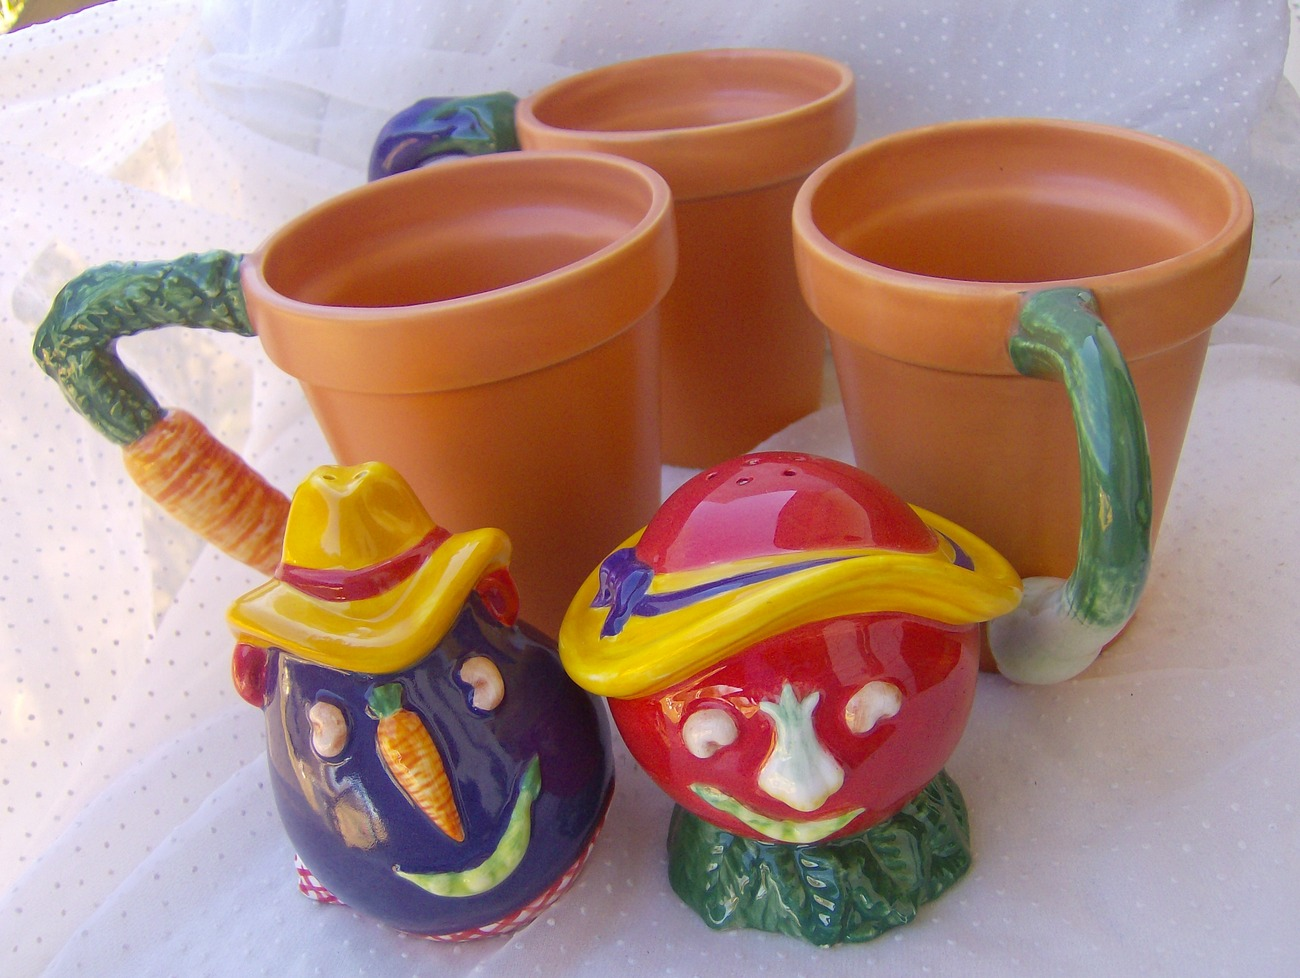 Dept 56 Garden Lot Vegetables Salt Pepper Shakers 3 Mugs Carrot Eggplant Tomato